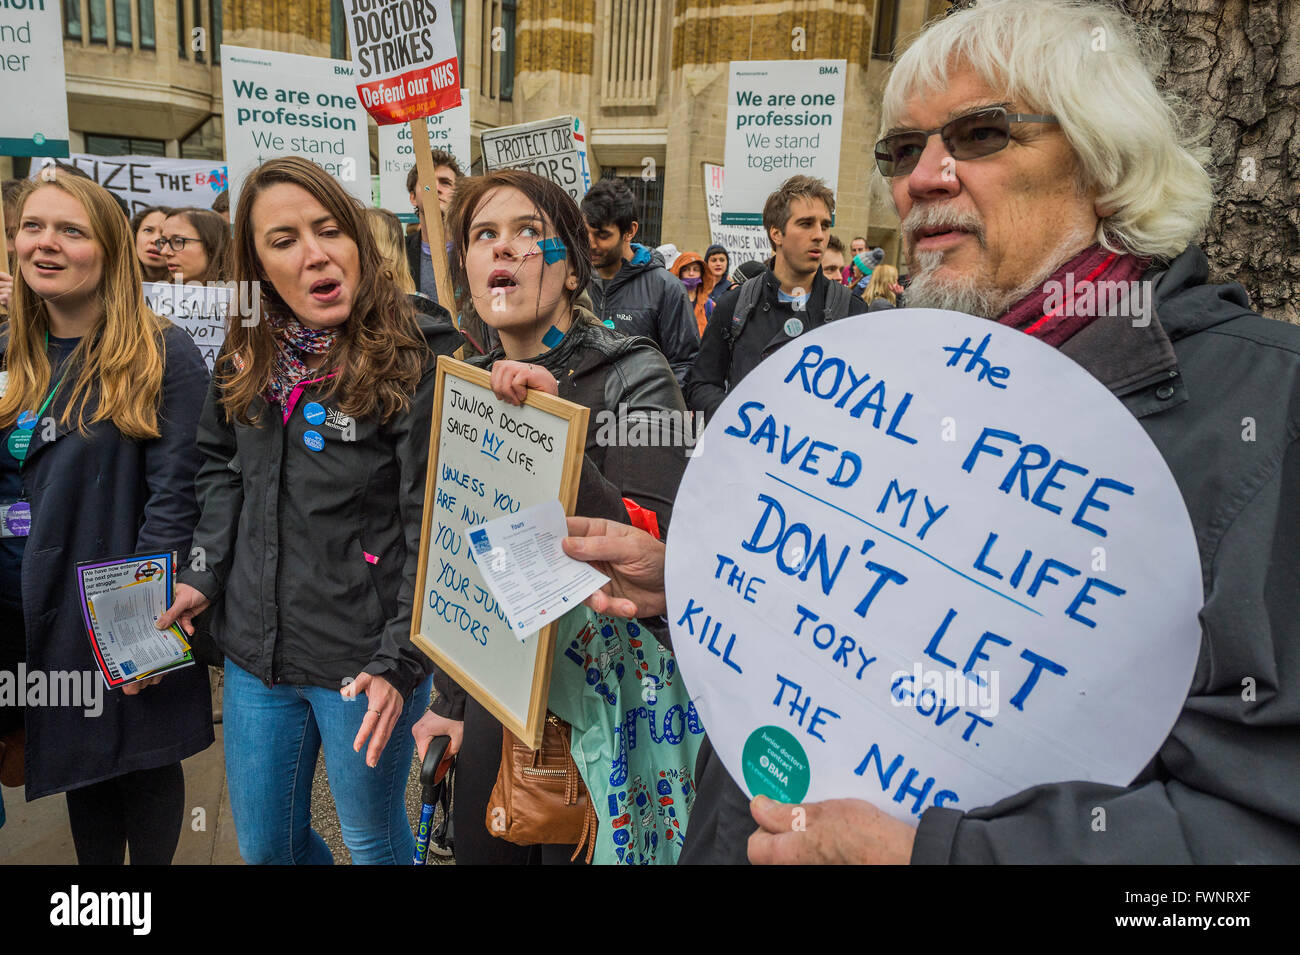 Whitehall, London, UK. 6th April, 2016. Patients show their support as nurses and doctors march on the department - Stock Image